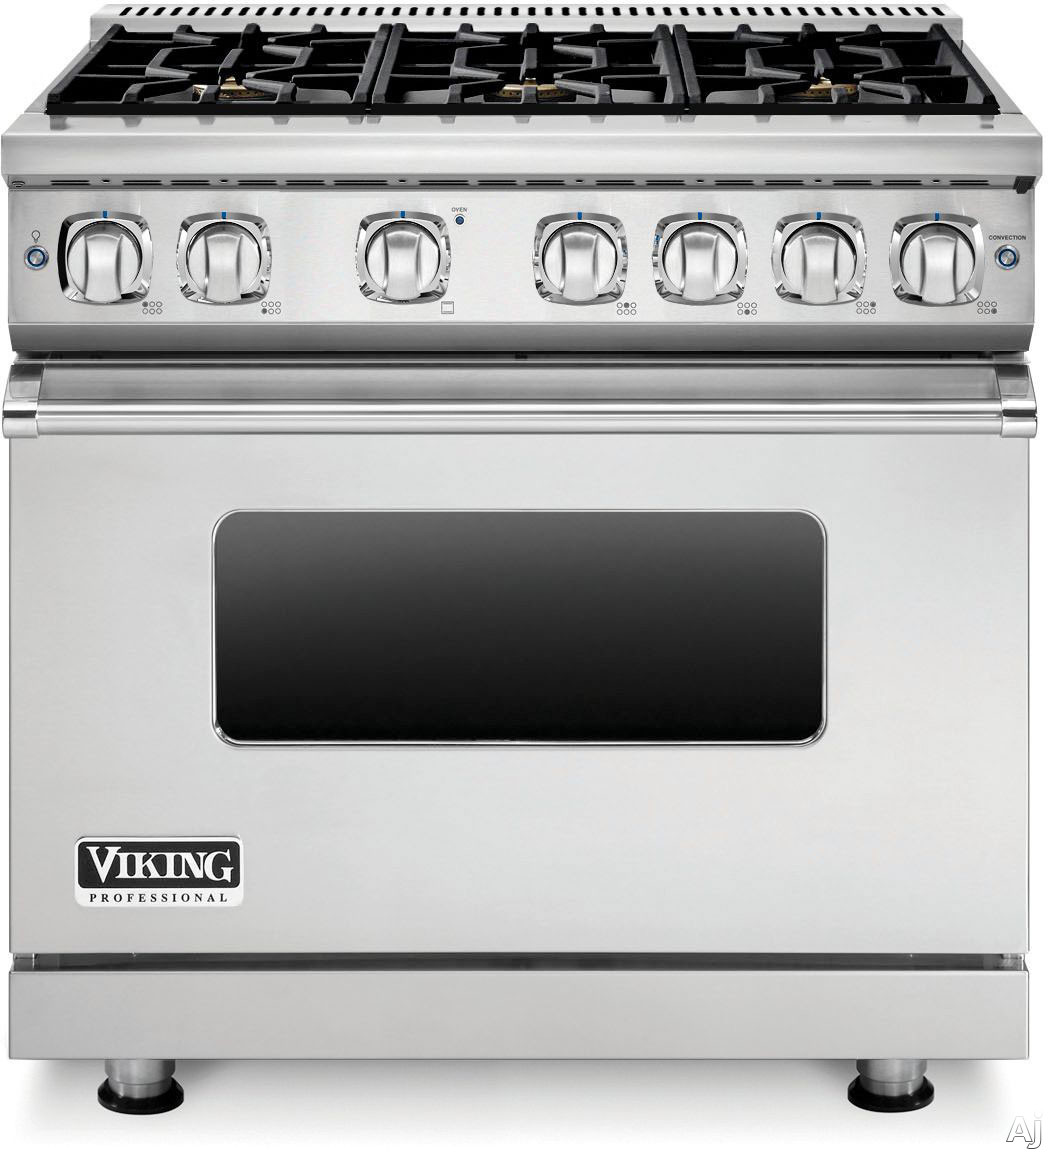 Viking Professional 7 Series VGR73616BSS 36 Inch Gas Range with 6 Sealed Burners, 5.1 cu. ft. Proflow Convection Oven, VariSimmer Setting, Gourmet Glo Infrared Broiler, GentleClose Door, TruGlide Full Extension Racks, Star-K Certified and SoftLit LED Con